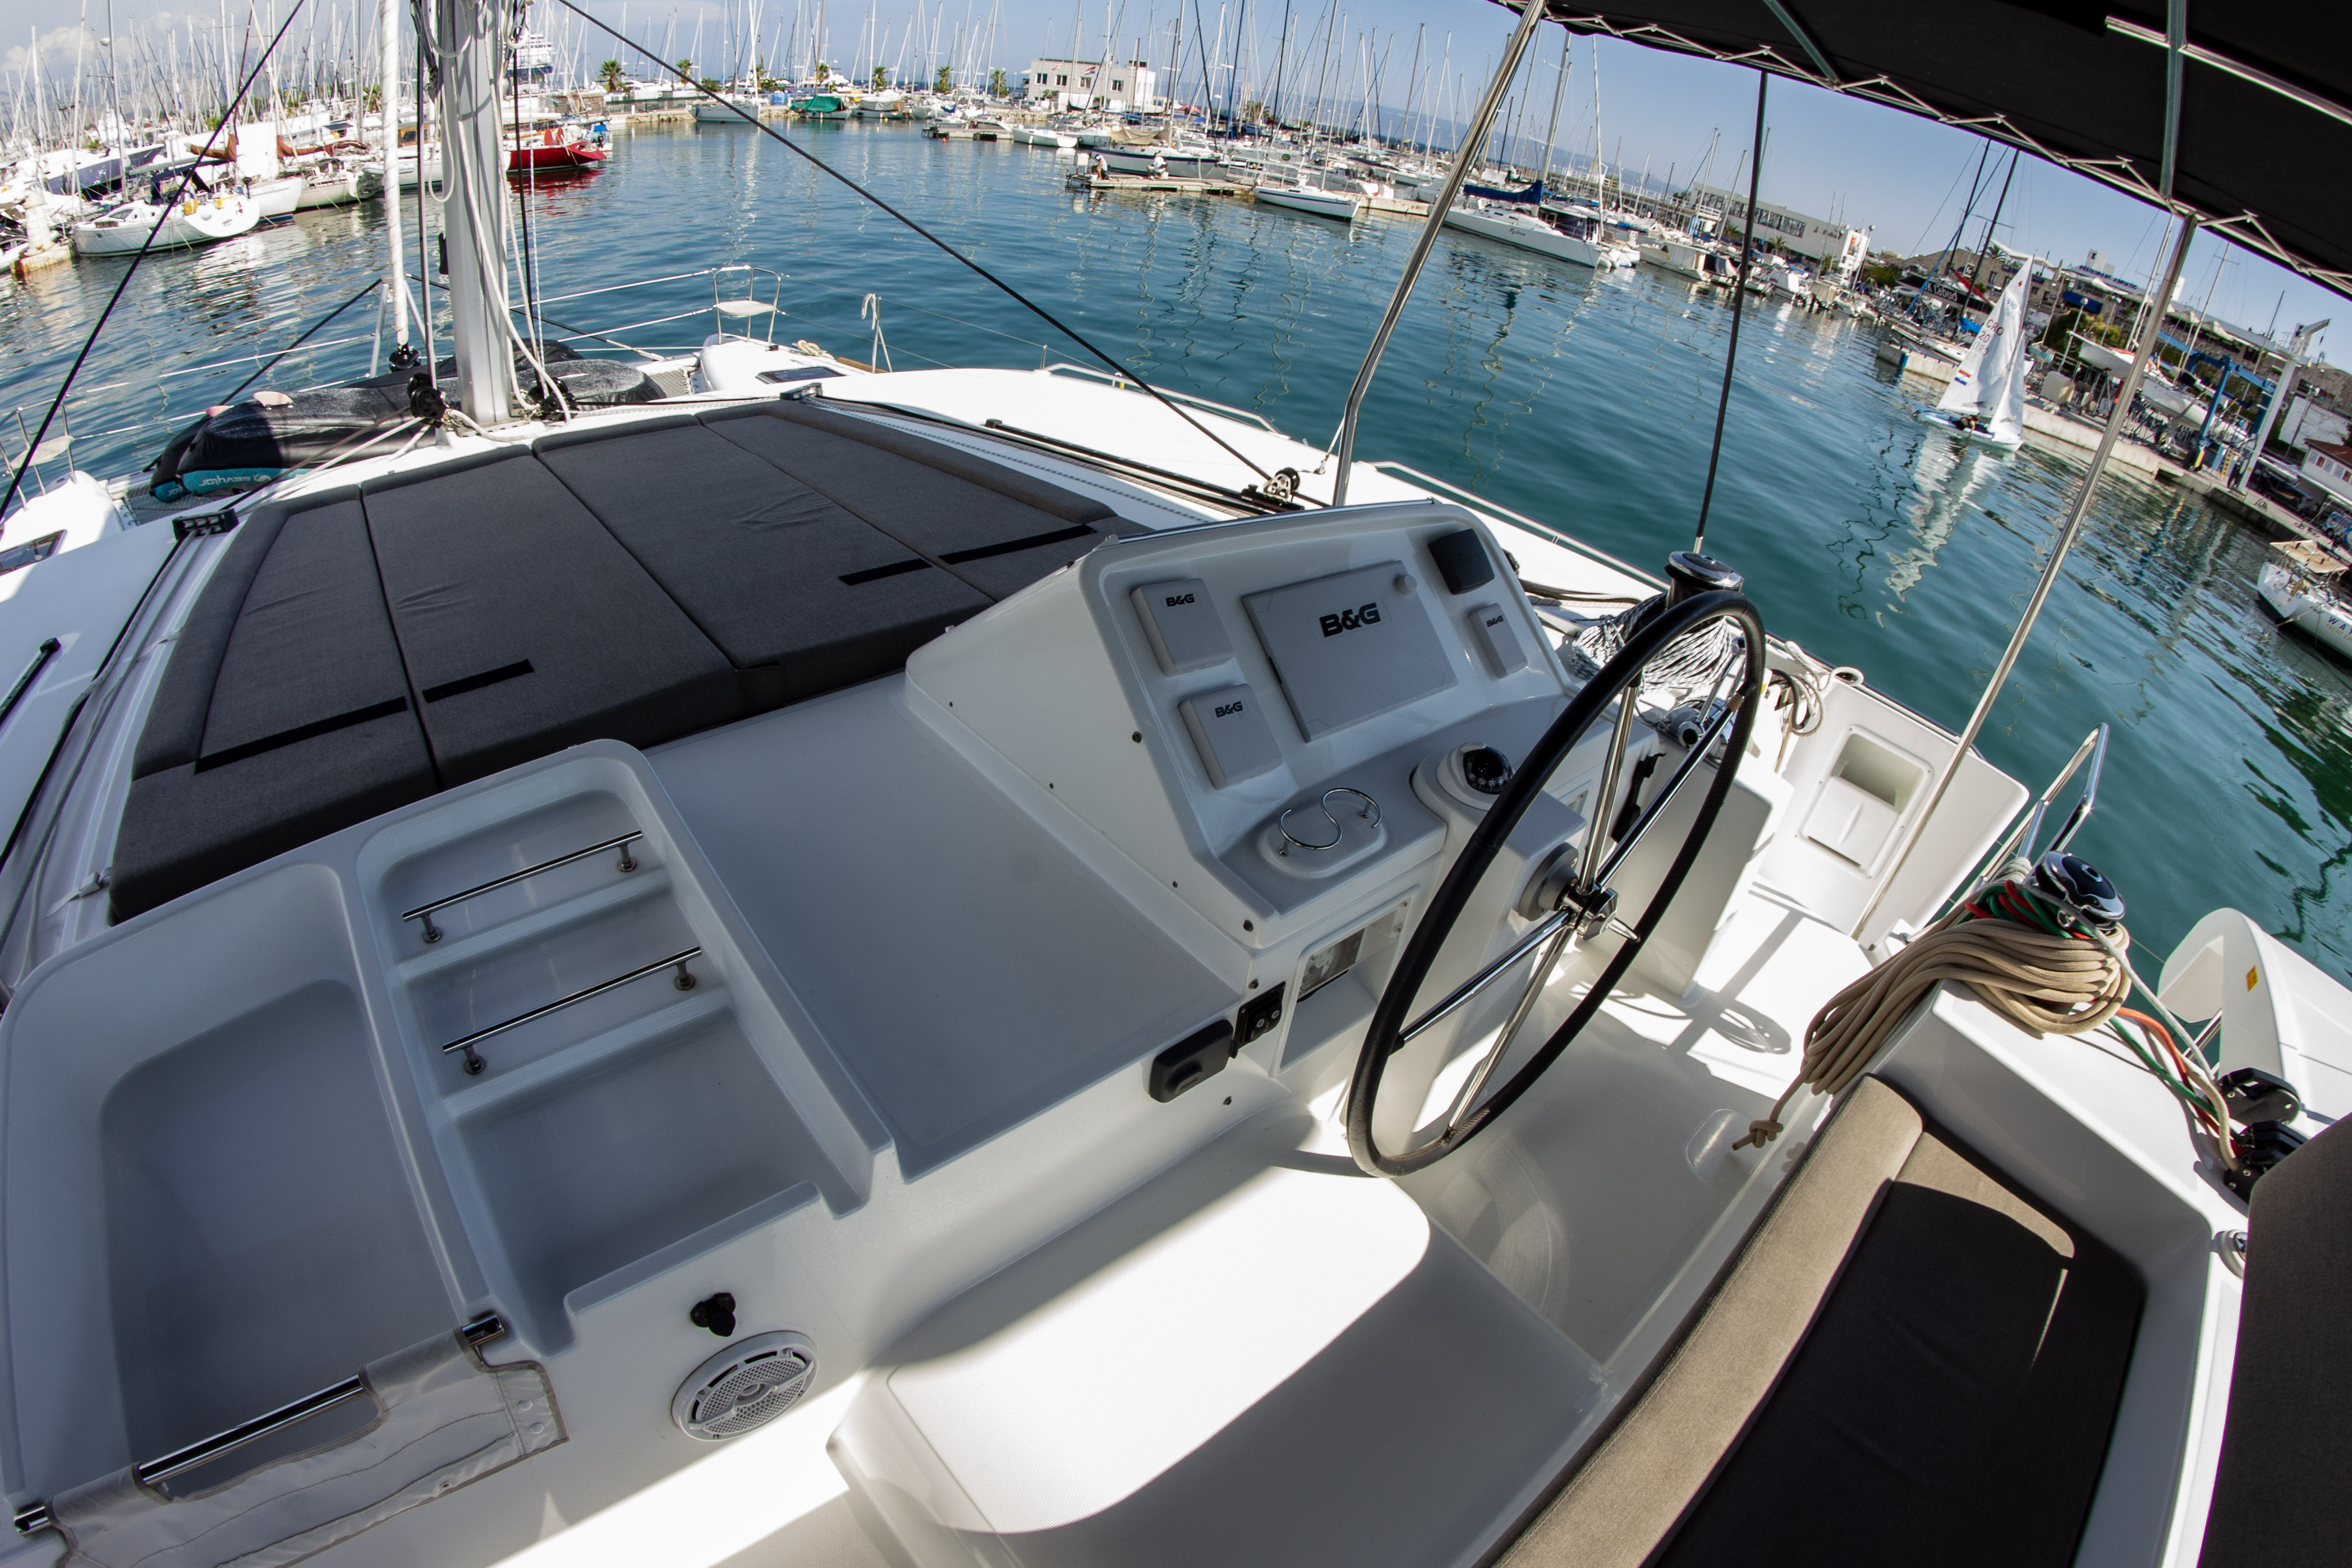 Lagoon 450 (2016) equipped with generator, A/C (sa (SMILE I)  - 24